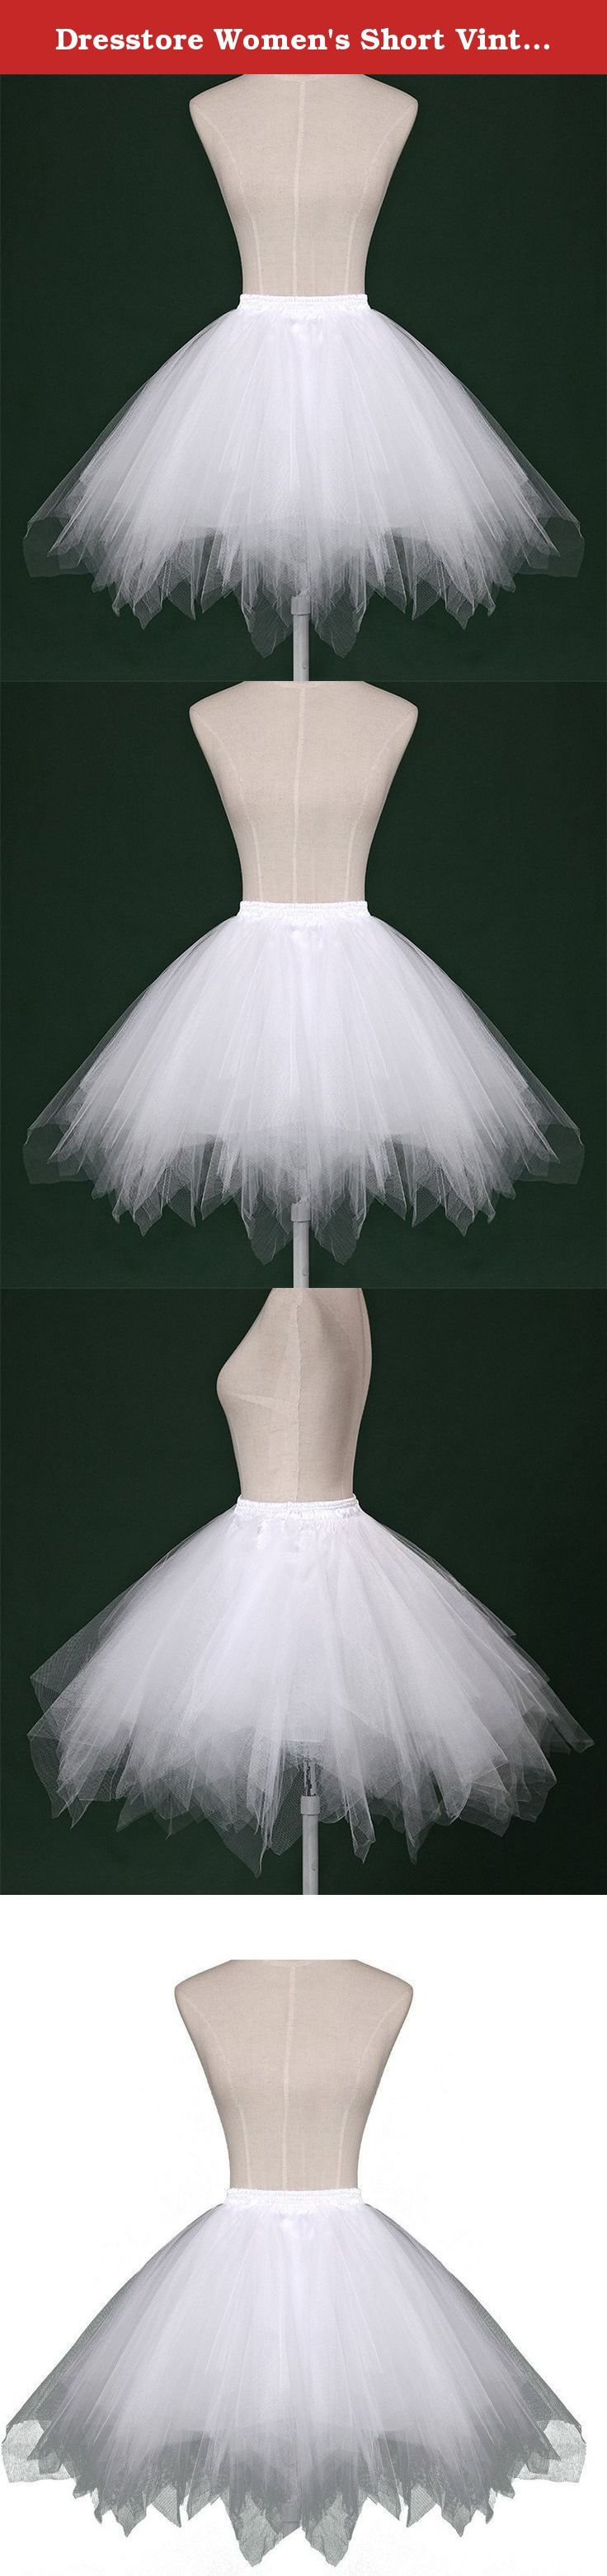 Dresstore Women's Short Vintage Petticoat Skirt Ballet Bubble Tutu Multi-colored White L/XL. Simple and sweety bubble skirt with soft tulle and lining which can prevent scratching gentle sensitive skin. Elastic waist band design make you conmfortable and it is easy to adjust.The bubble hem helps to make your various dresses more fluffy and cute. It can be used as great birthday/cocktail/party/fancy/festival favors that guests can enjoy wearing at the event. There might be a little bit…